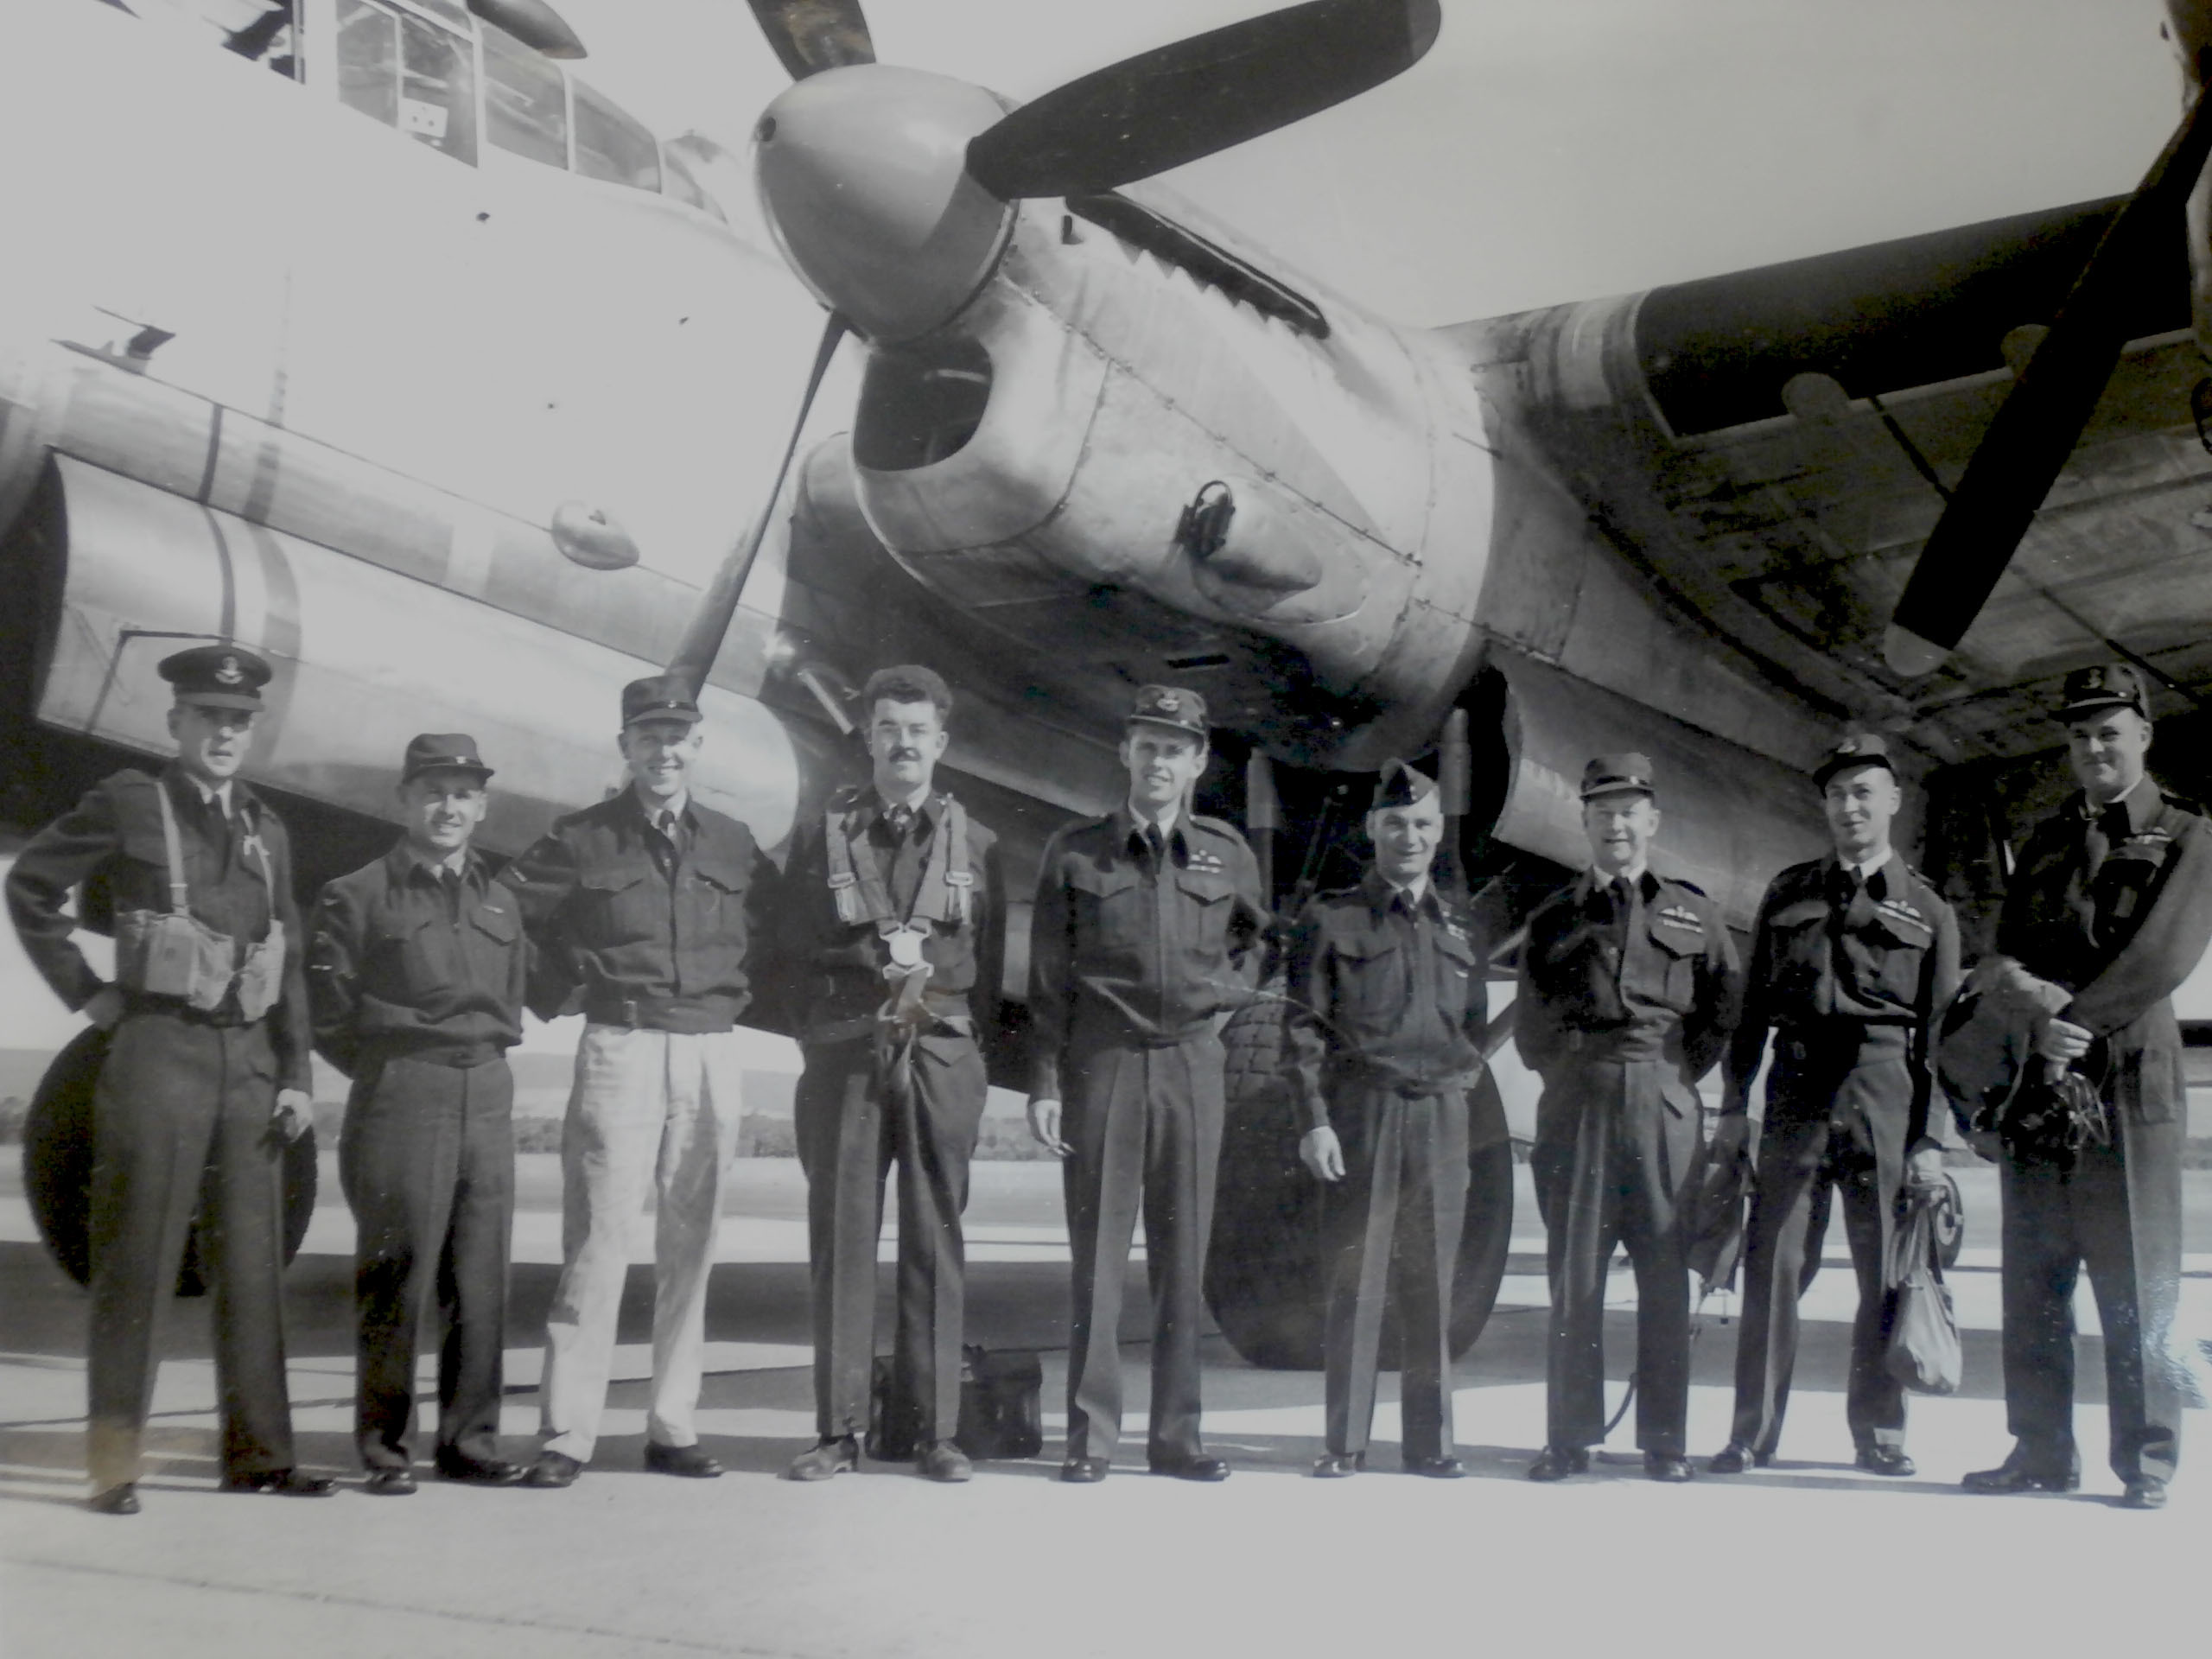 The flight crew of Lancaster 965 is shown in this photo, taken shortly before the crash. Flying Officer James McCutcheon is pictured in the centre, fifth from the left. (Submitted by Richard Mayne/RCAF)